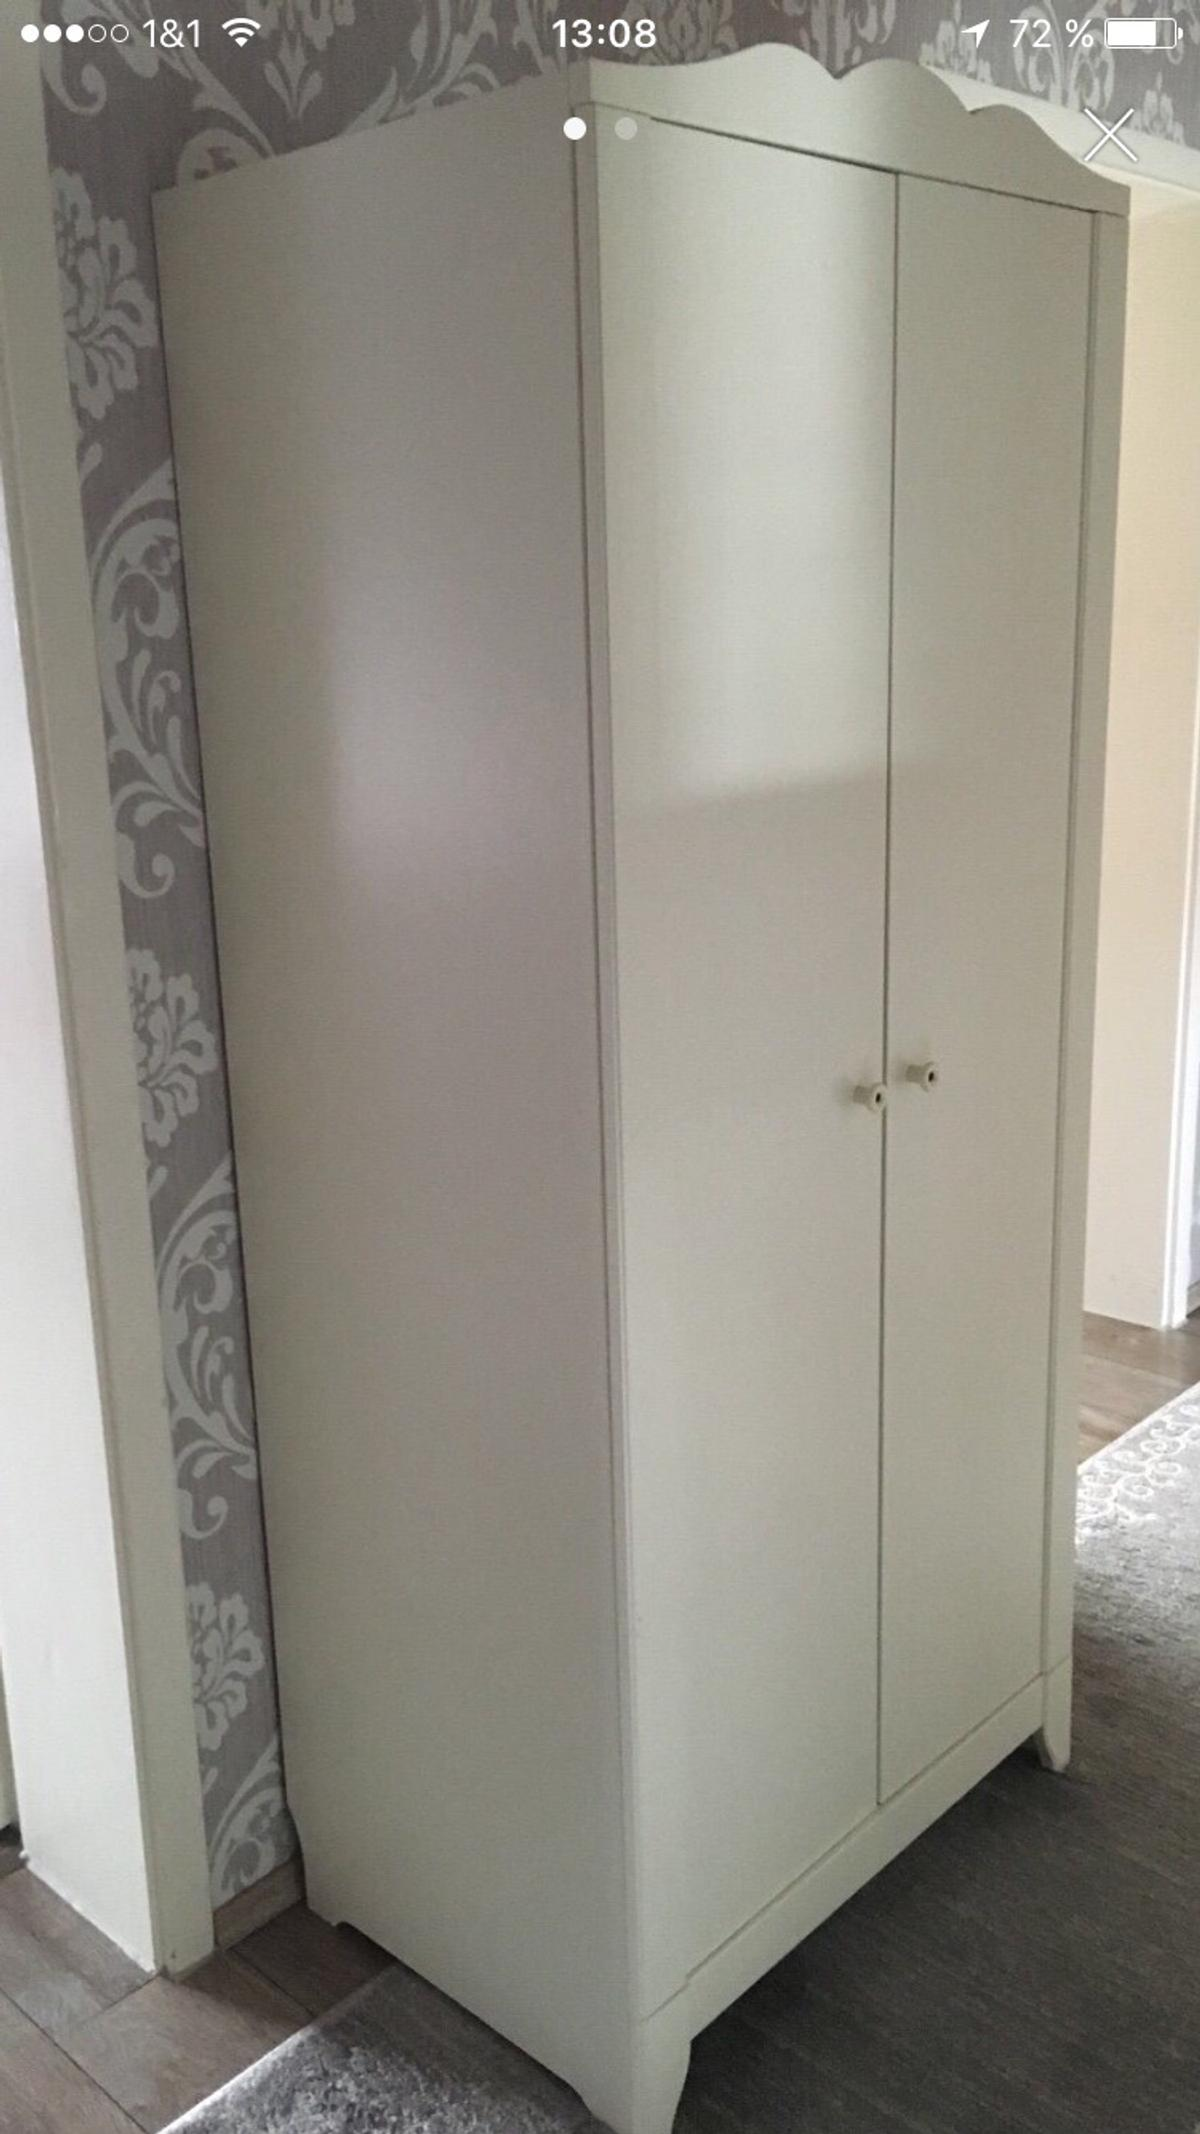 Ikea Kleiderschrank In 67547 Worms For 75 00 For Sale Shpock